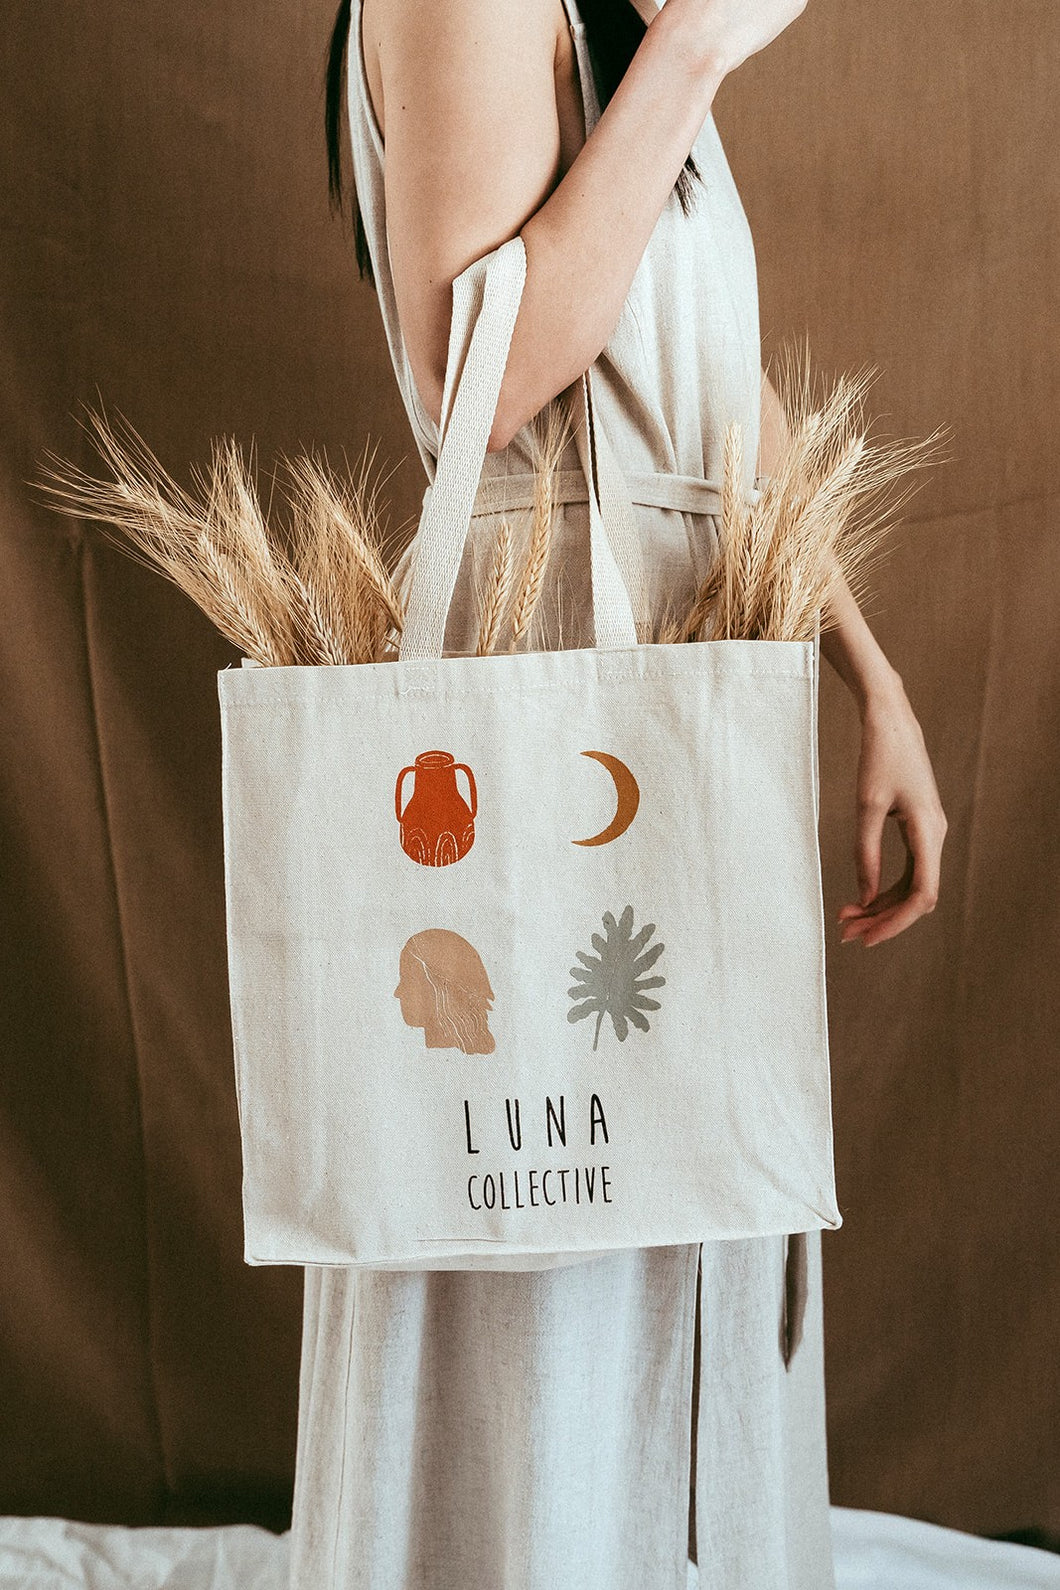 Luna Collective Tote Bag